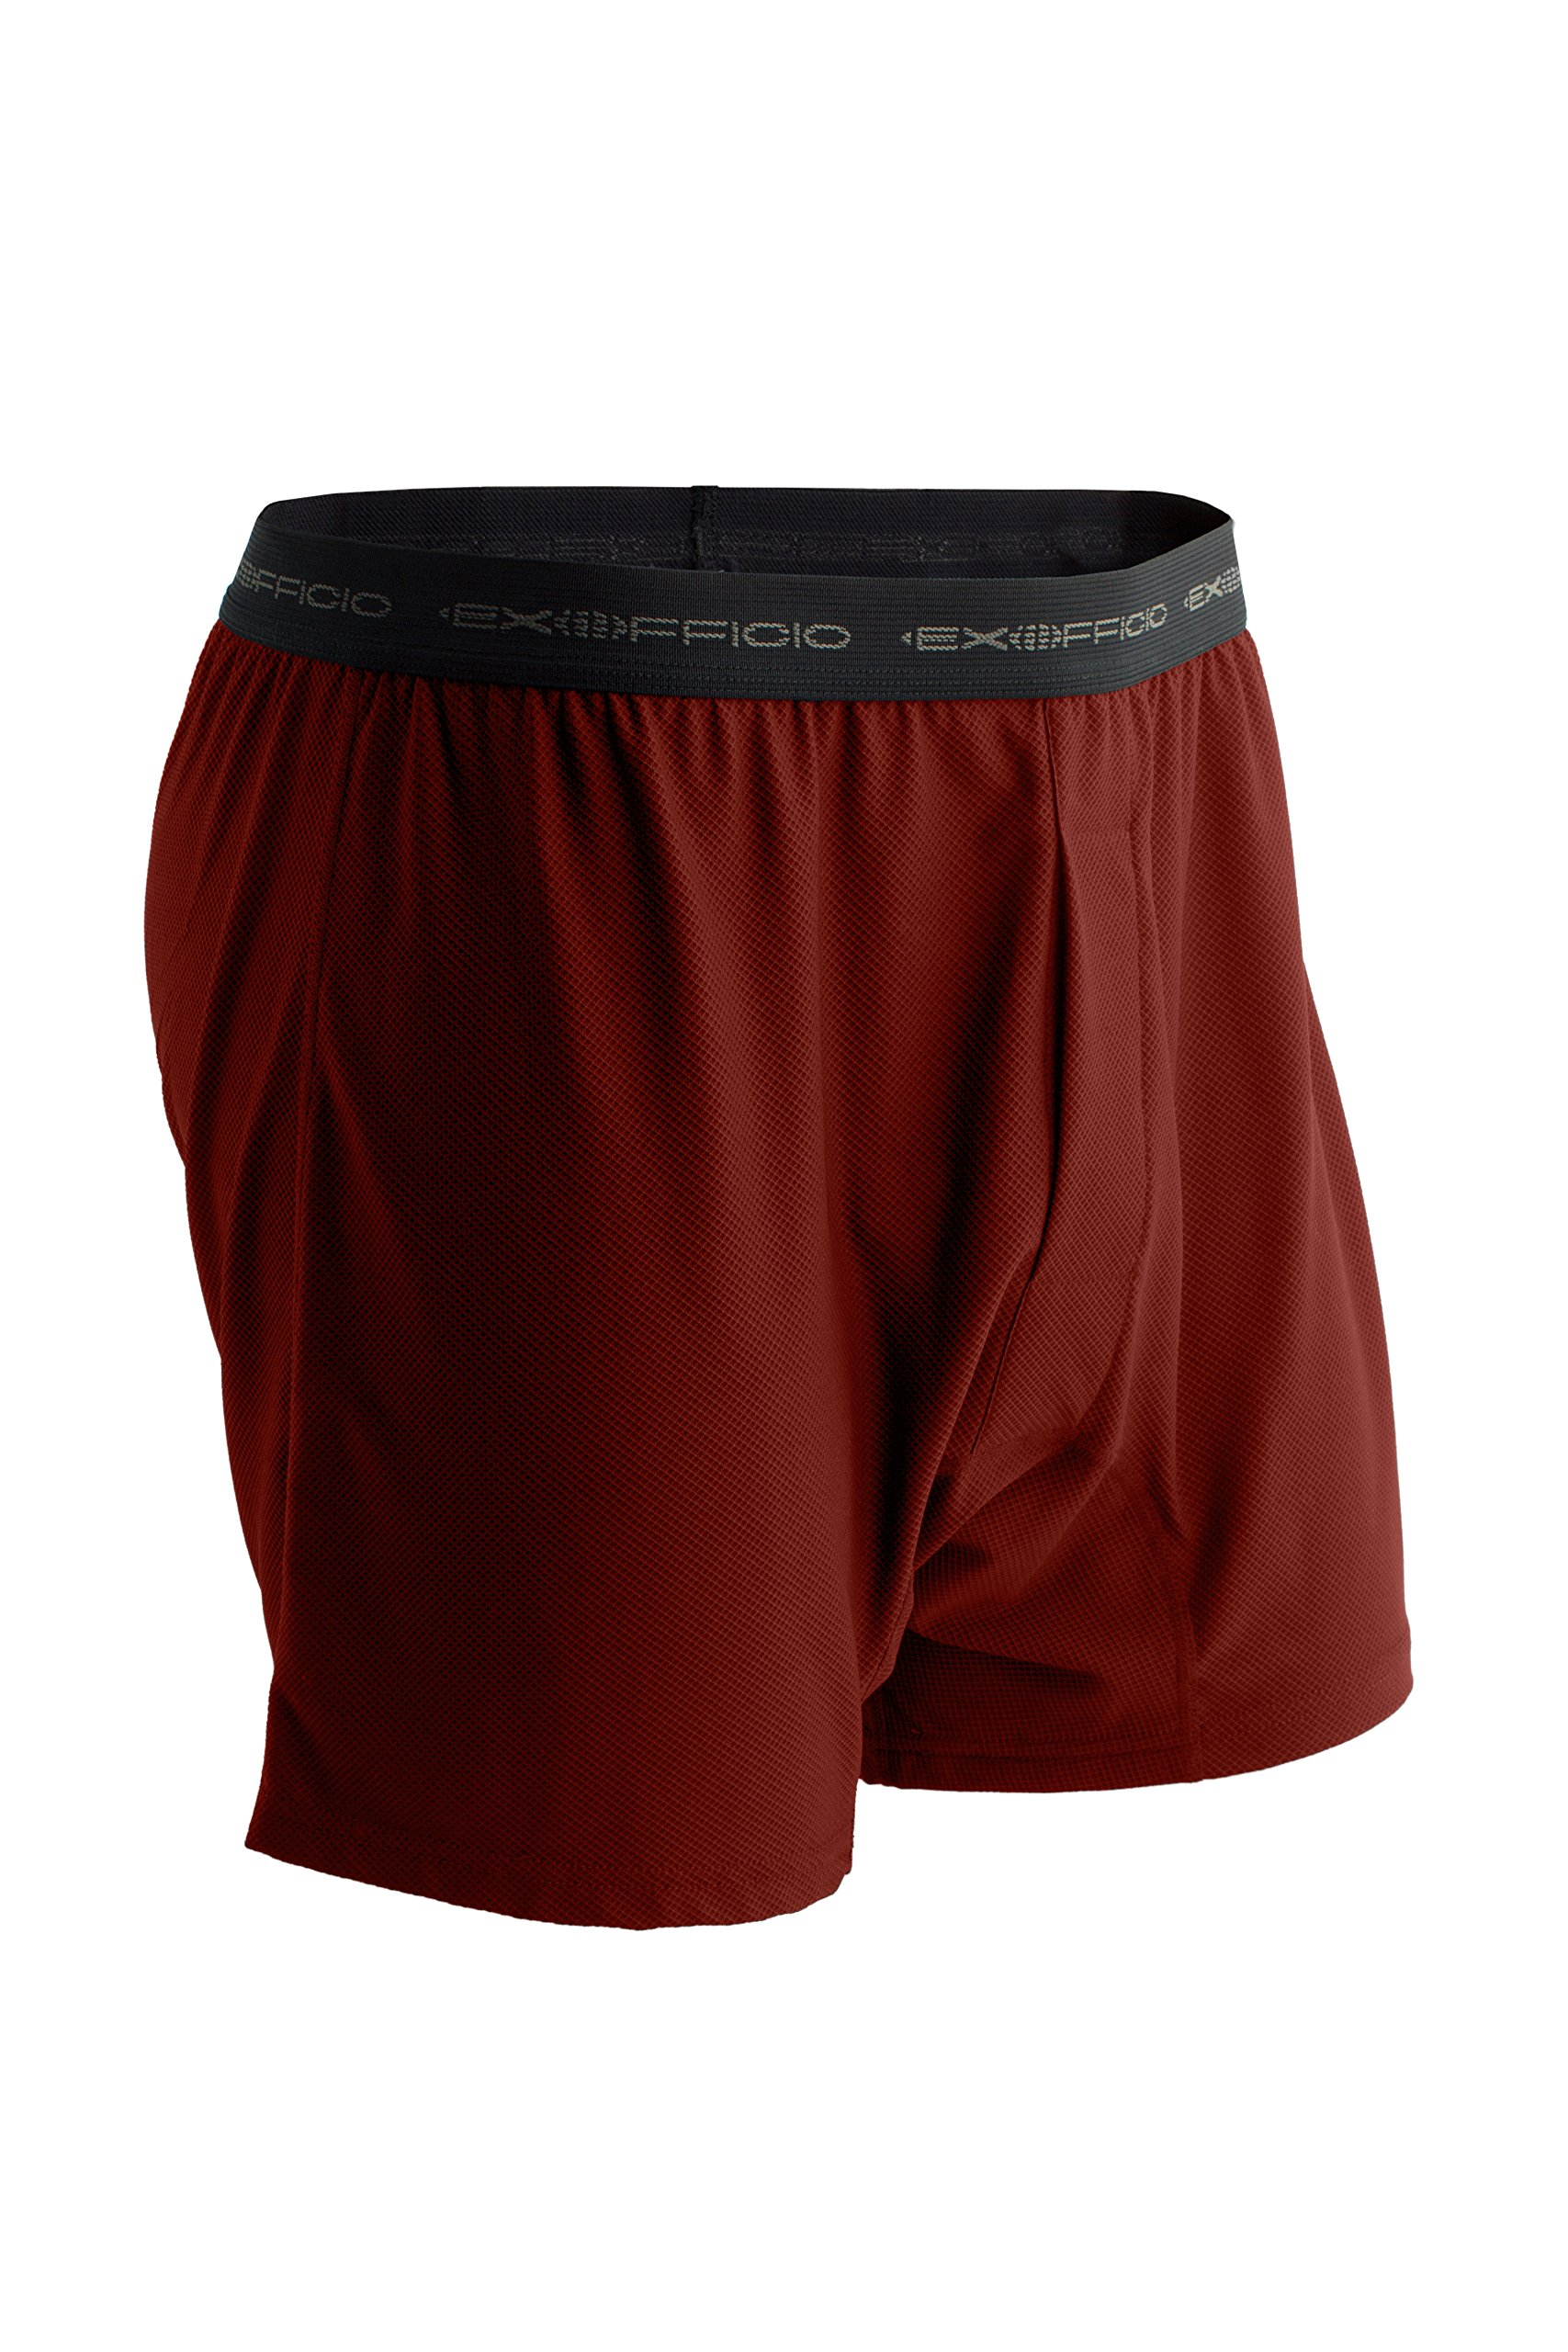 ExOfficio Men's Give-N-Go Boxer Travel Underwear, Bolero Red, Small